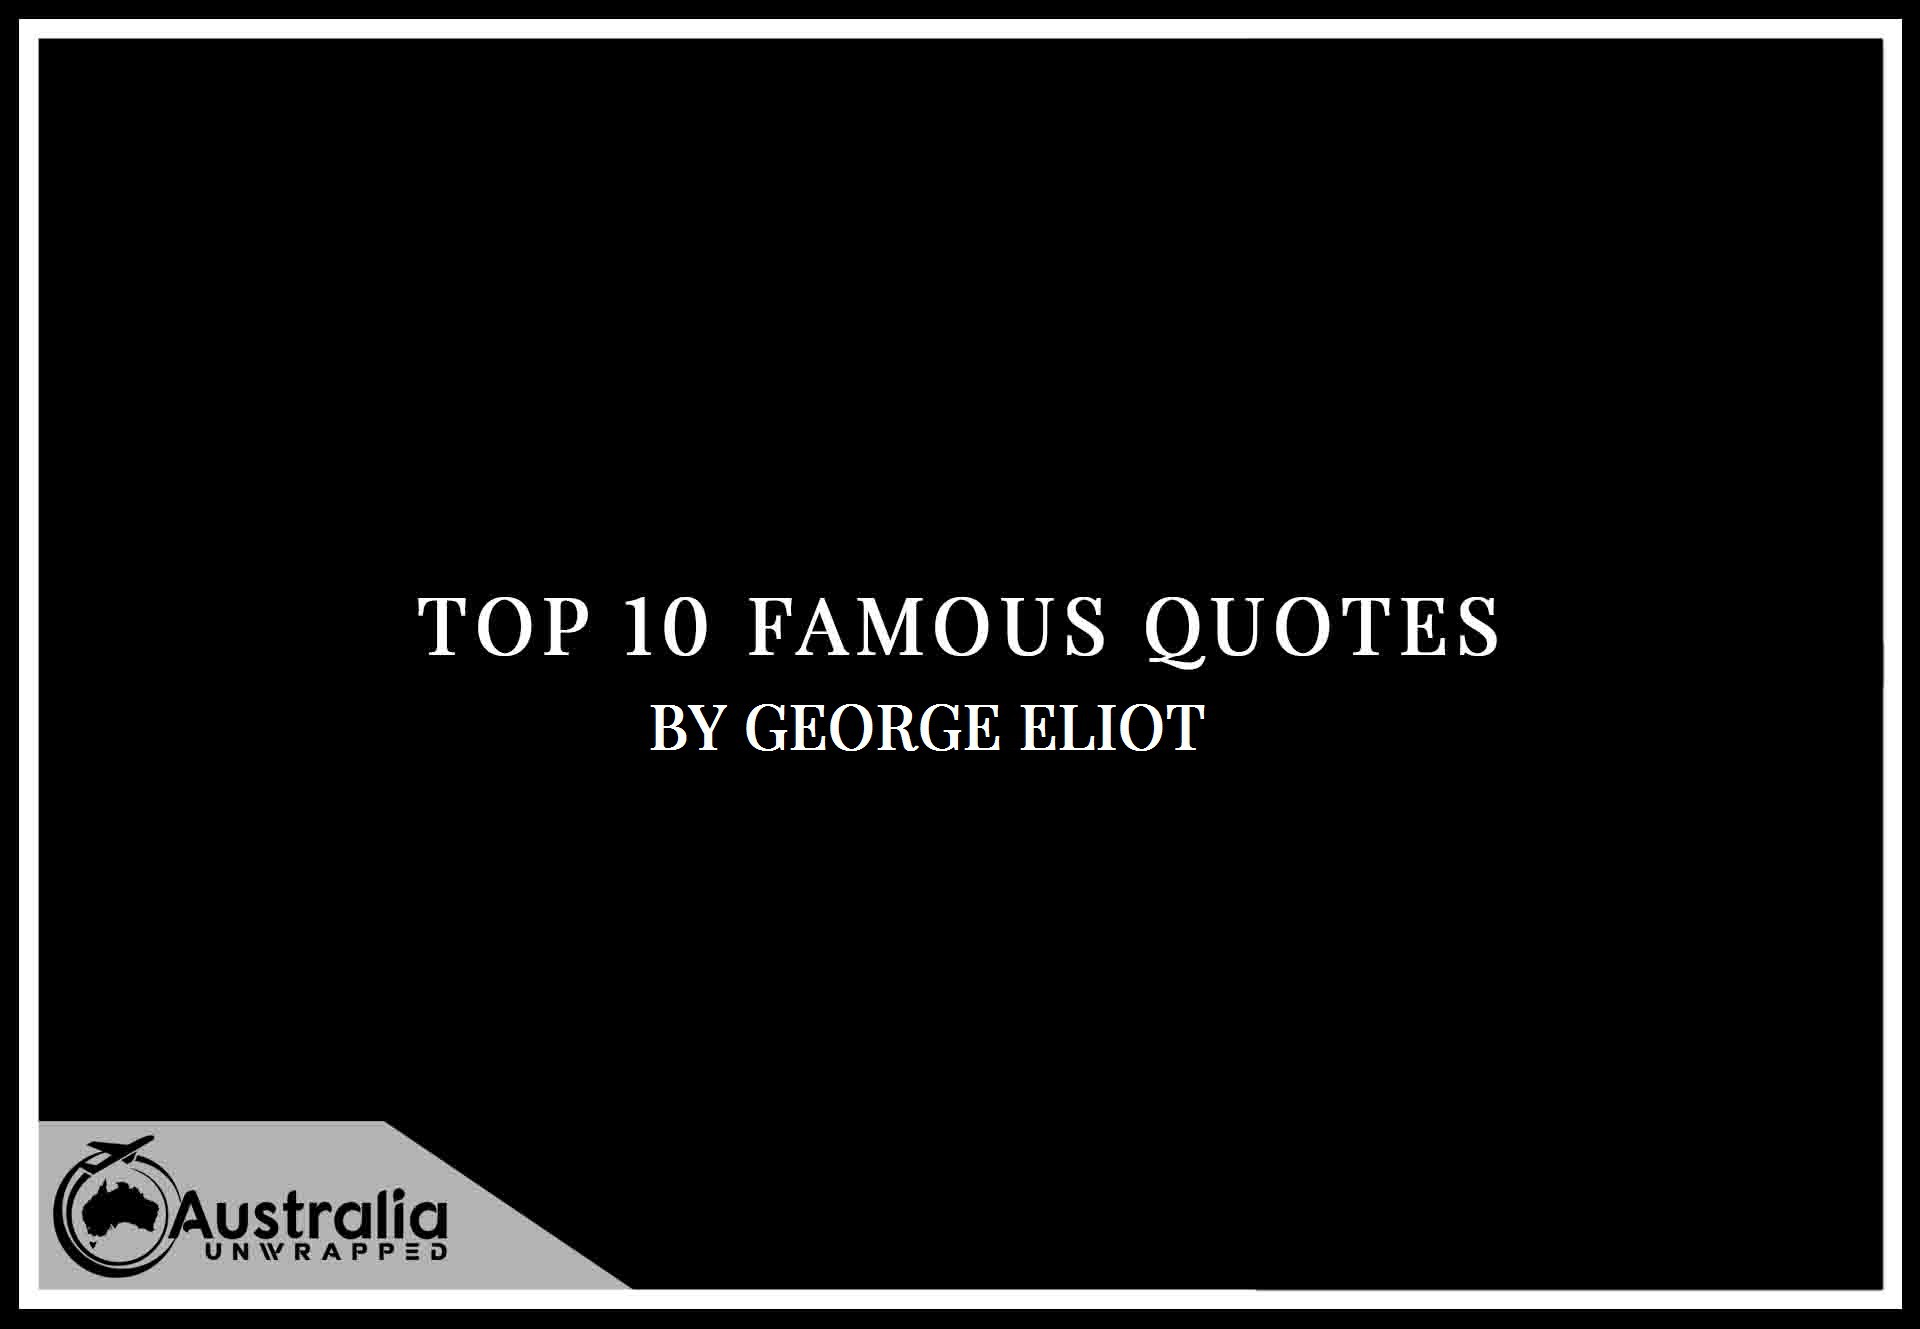 George Eliot's Top 10 Popular and Famous Quotes